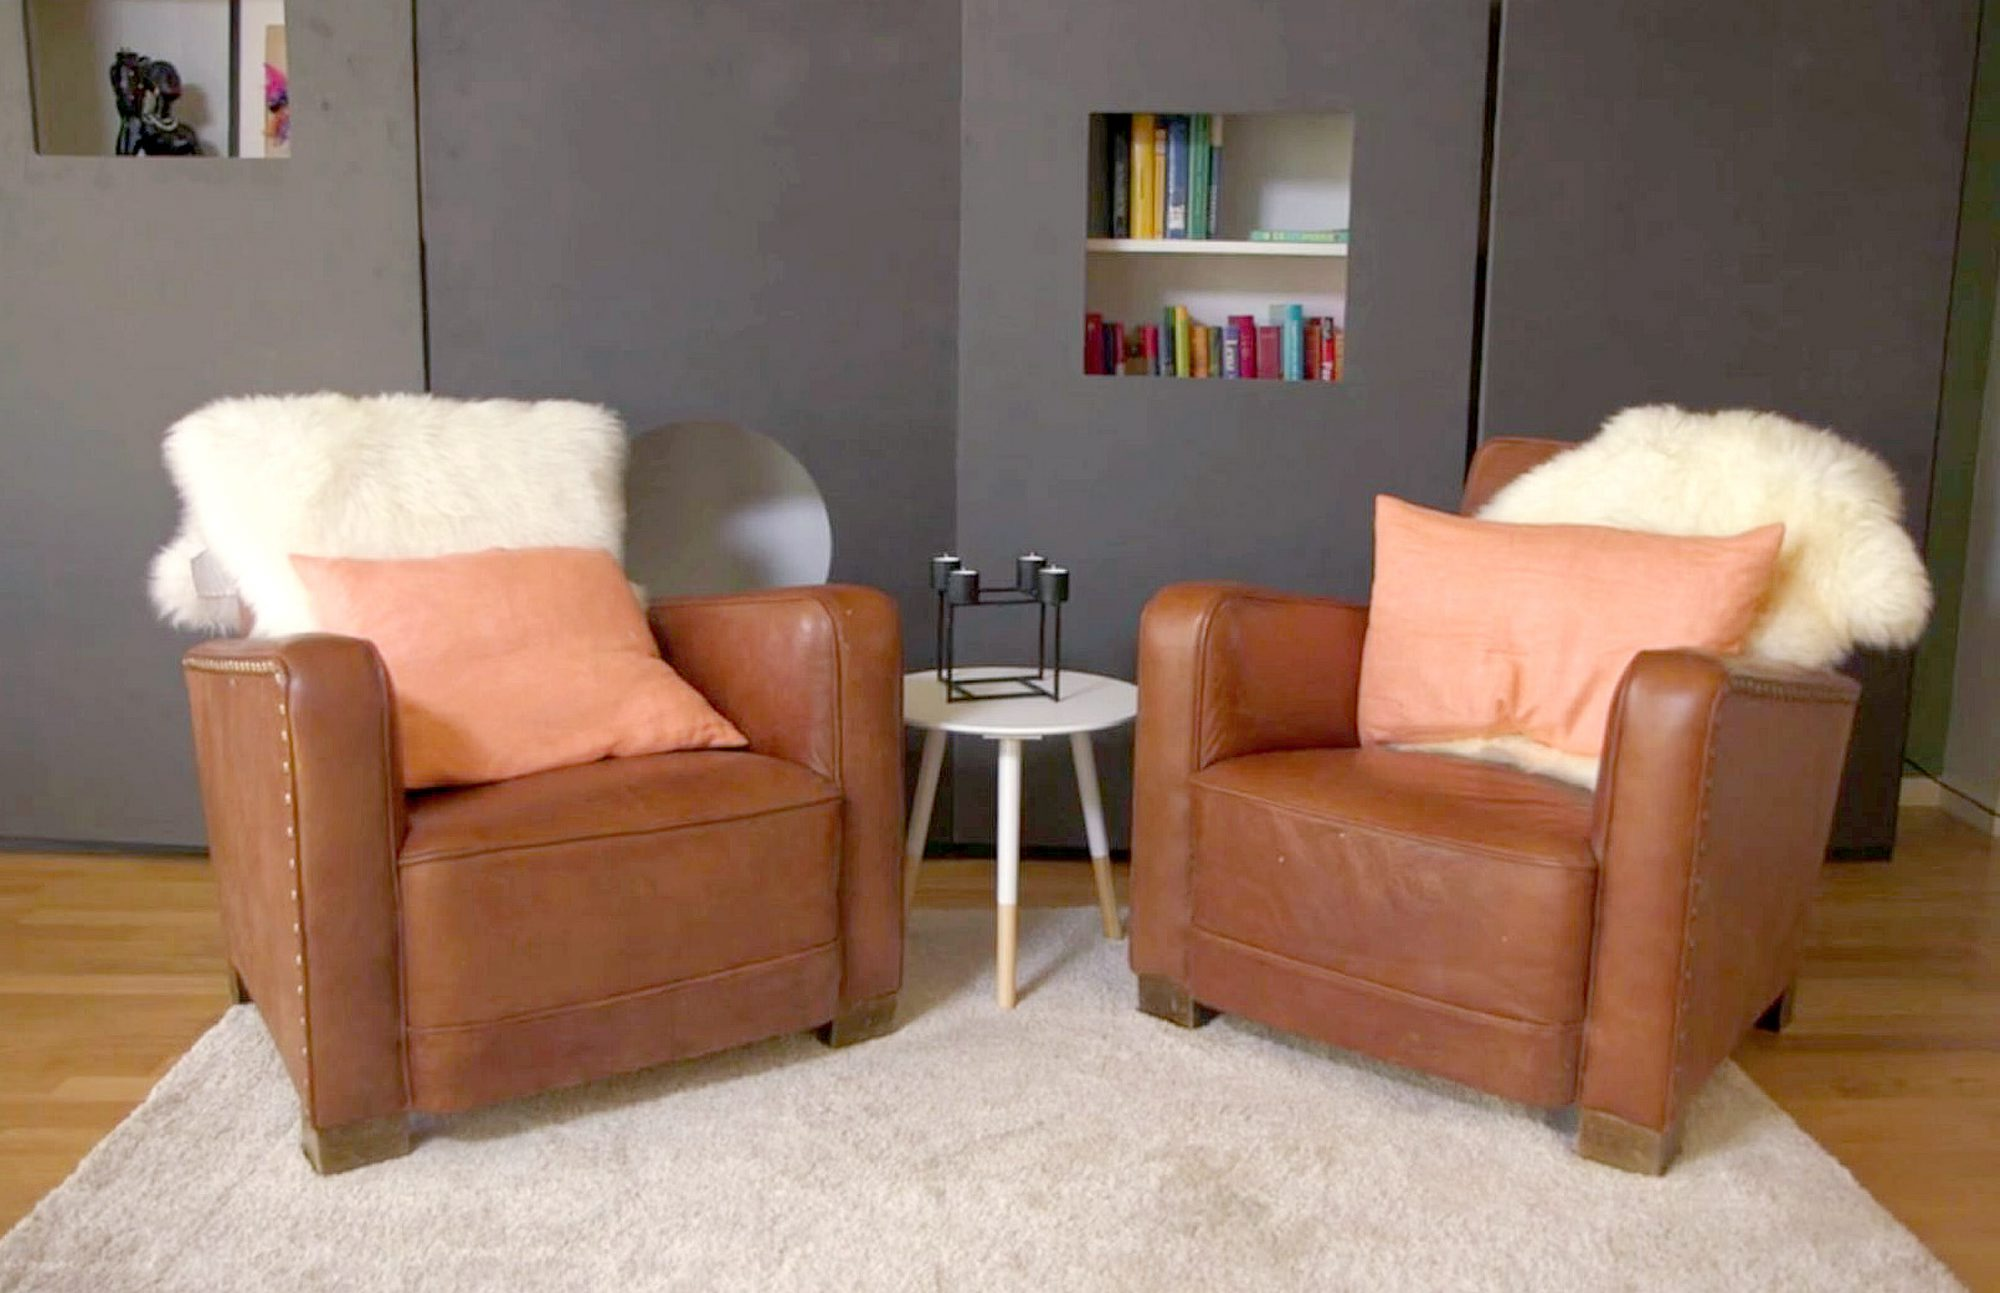 skeidar sofa brown leather bed gumtree produktinfo og fargekoder fra 3. nov – rom123